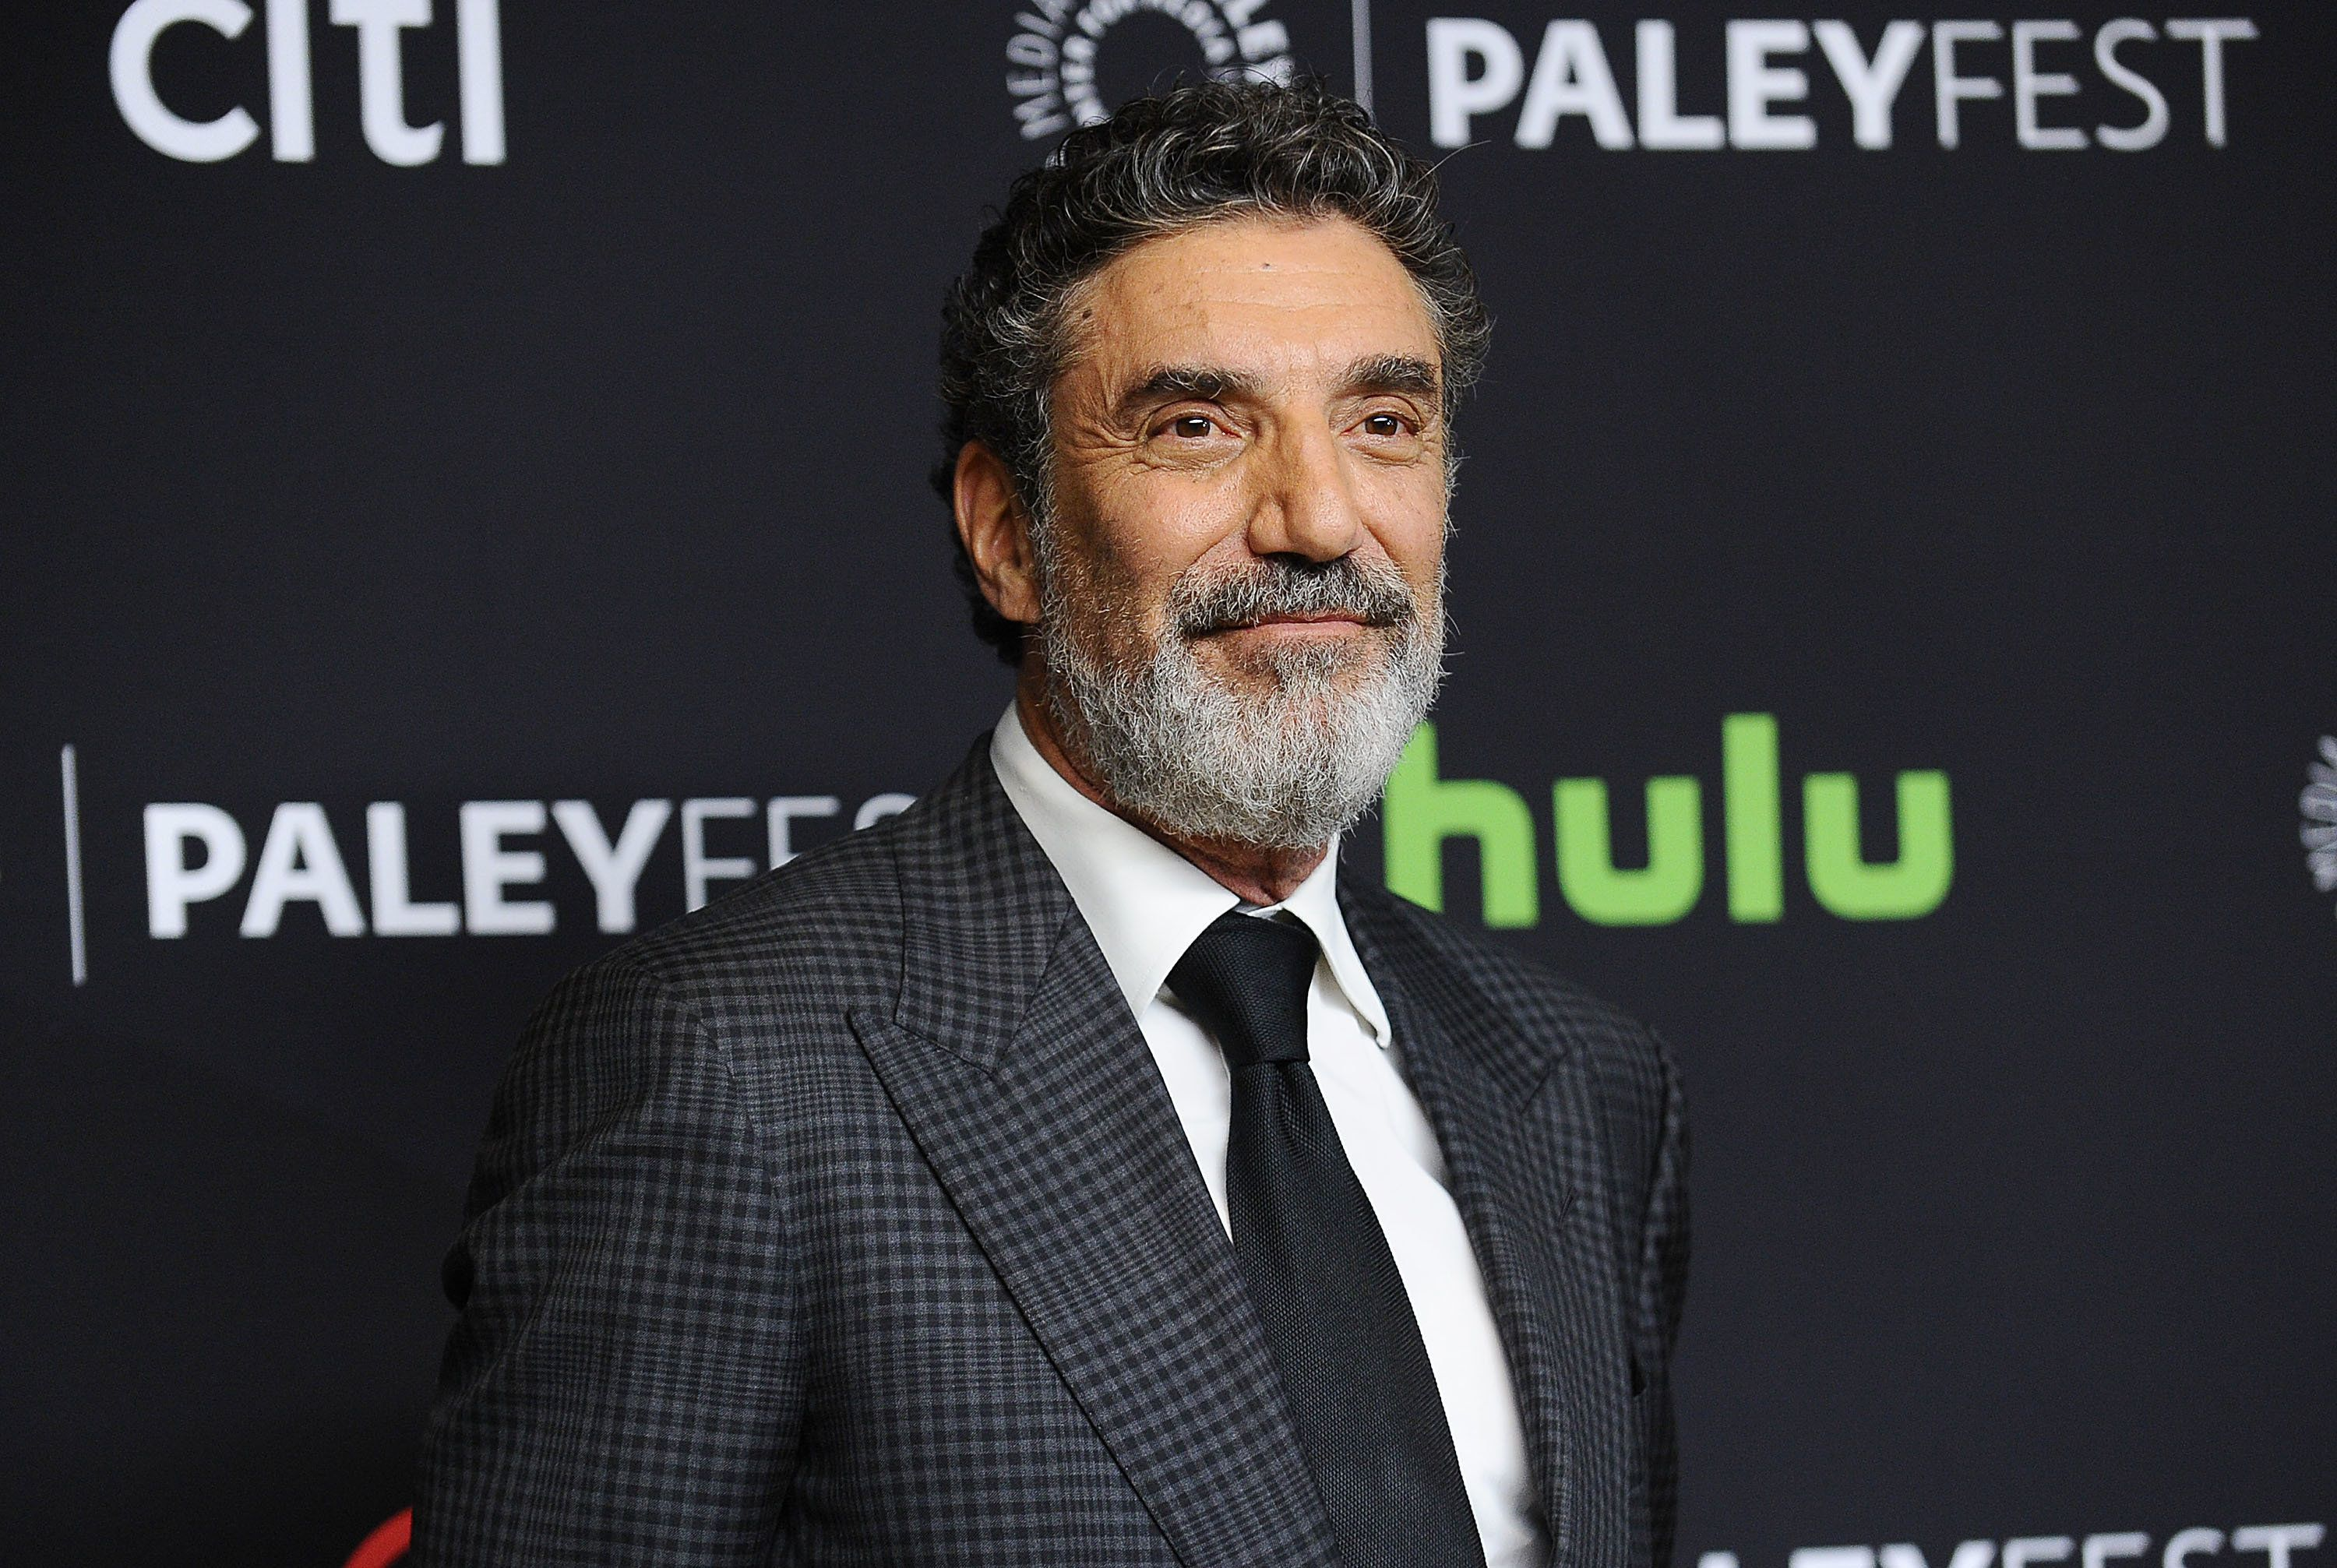 HOLLYWOOD, CA - MARCH 16:  Producer Chuck Lorre attends 'The Big Bang Theory' event at the 33rd annual PaleyFest at Dolby Theatre on March 16, 2016 in Hollywood, California.  (Photo by Jason LaVeris/FilmMagic)